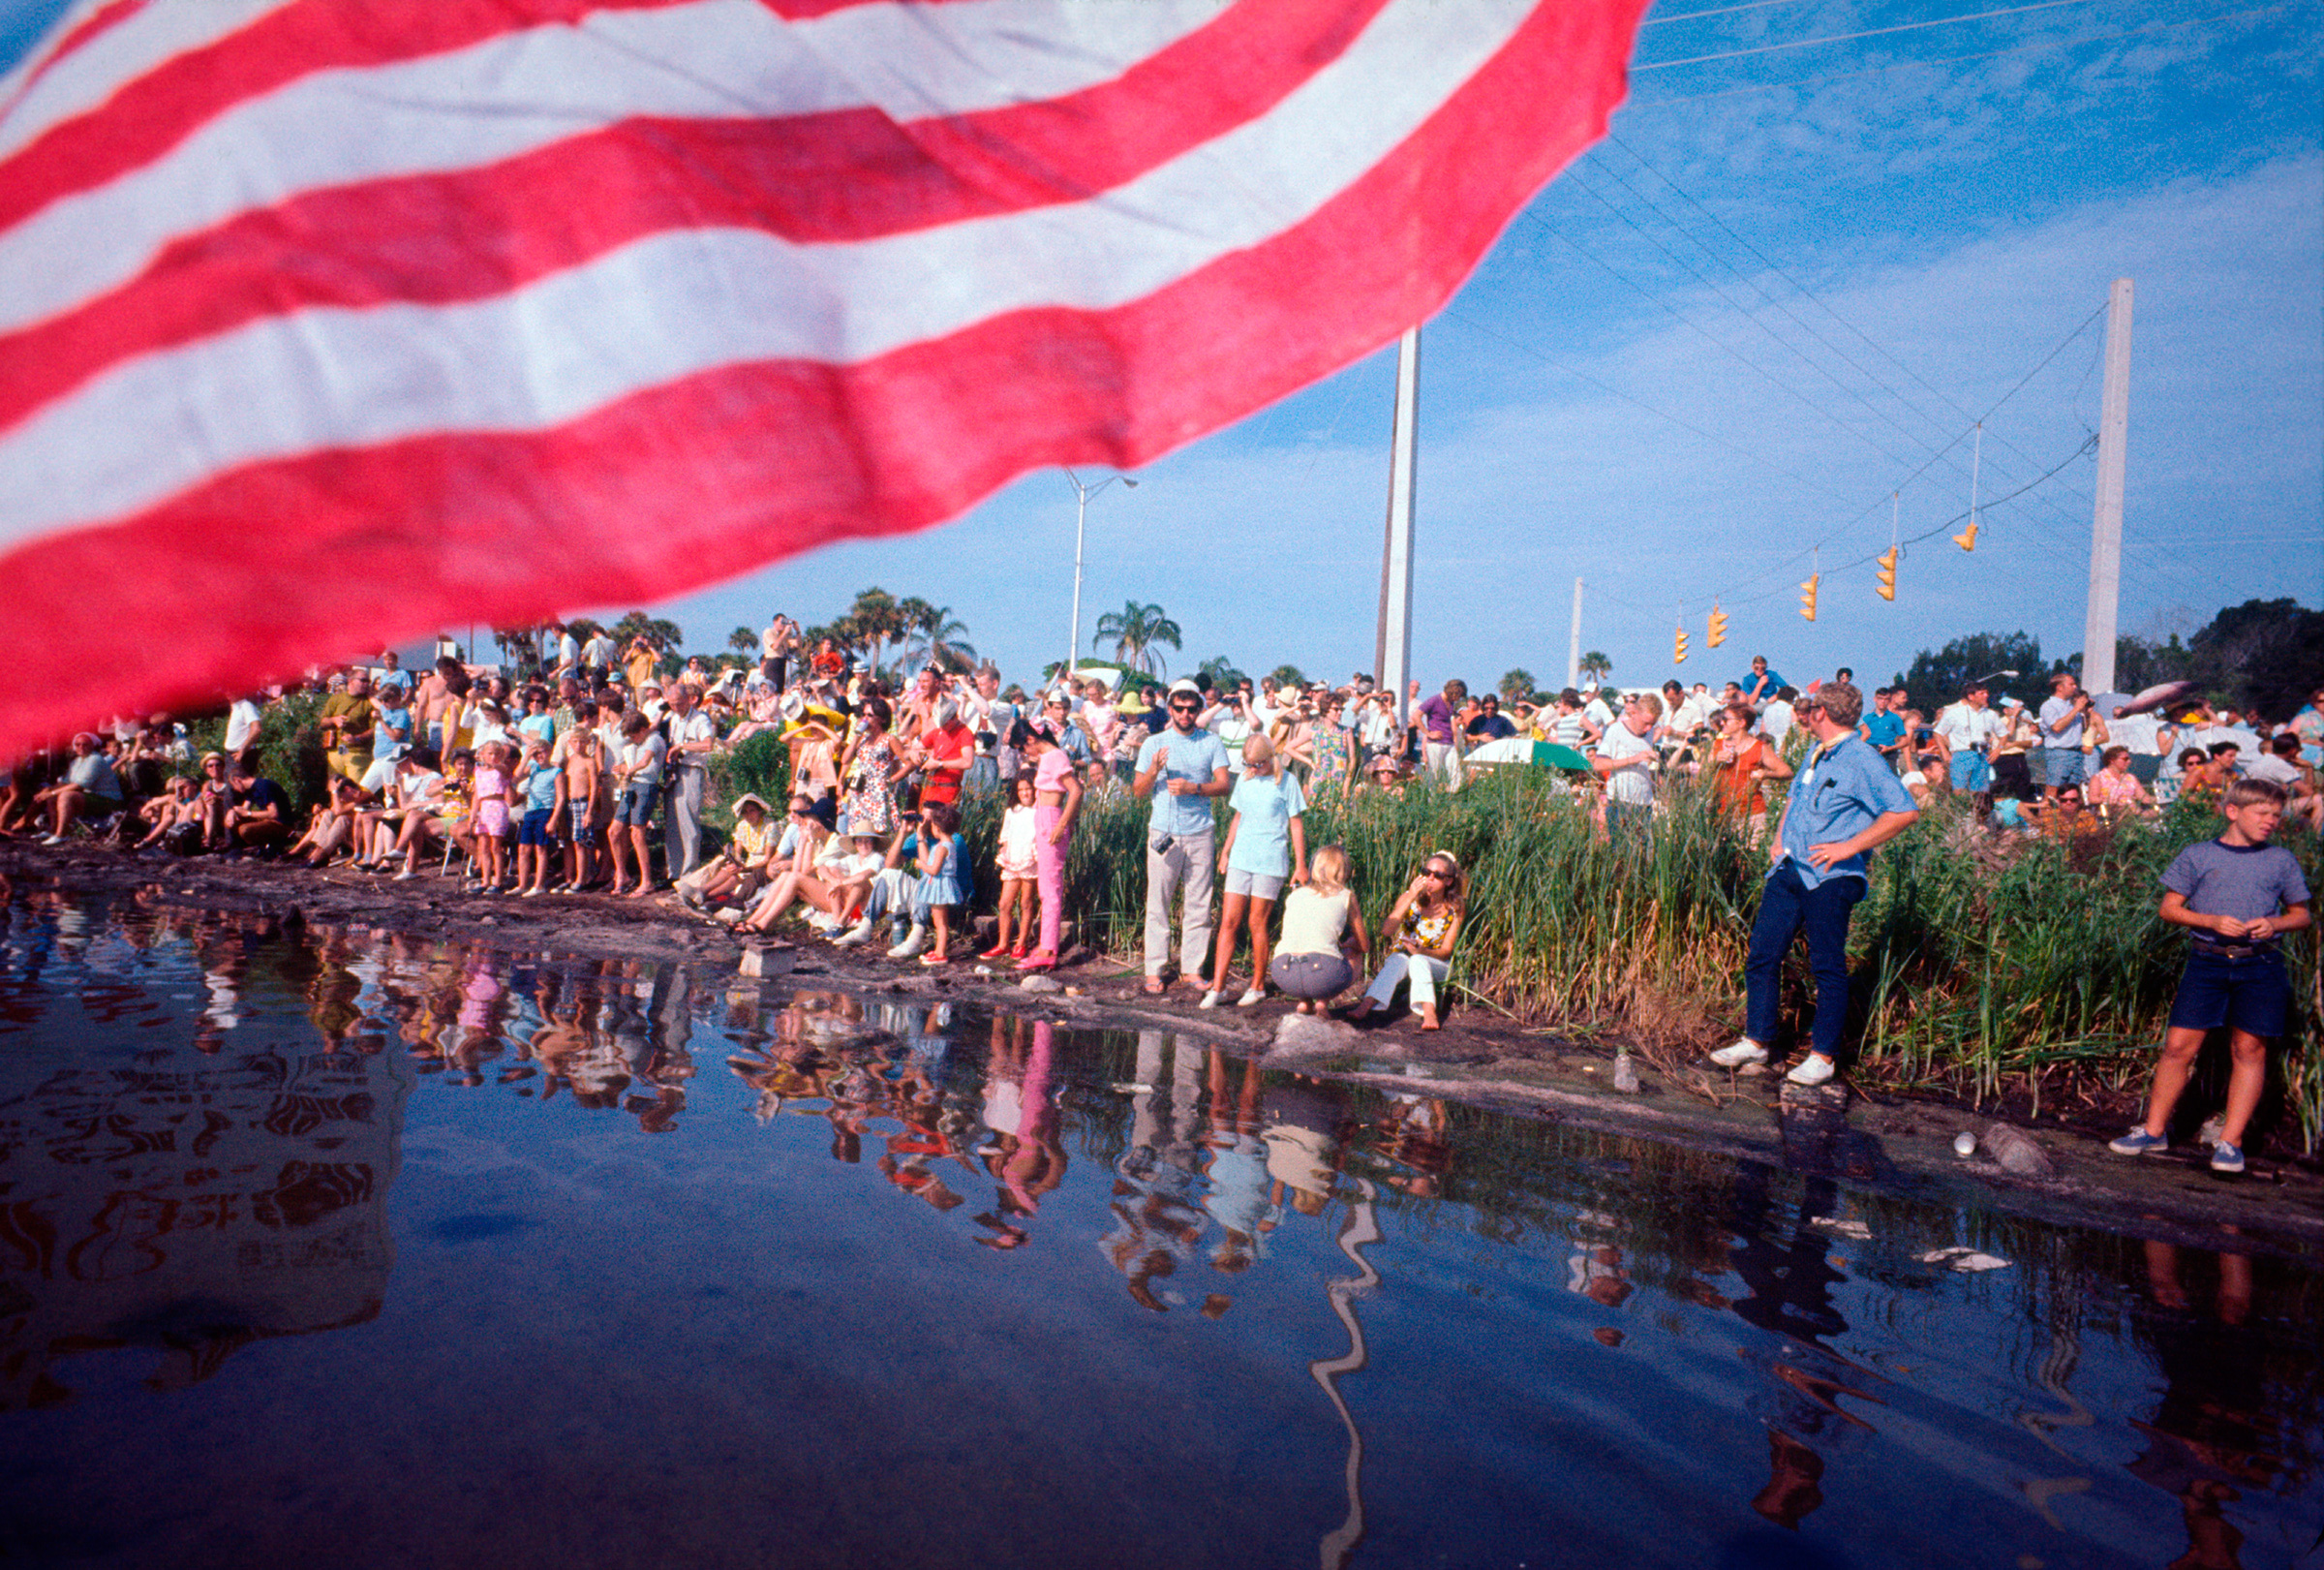 Crowds in Titusville, Florida await the Apollo 11 launch on July 16, 1969.